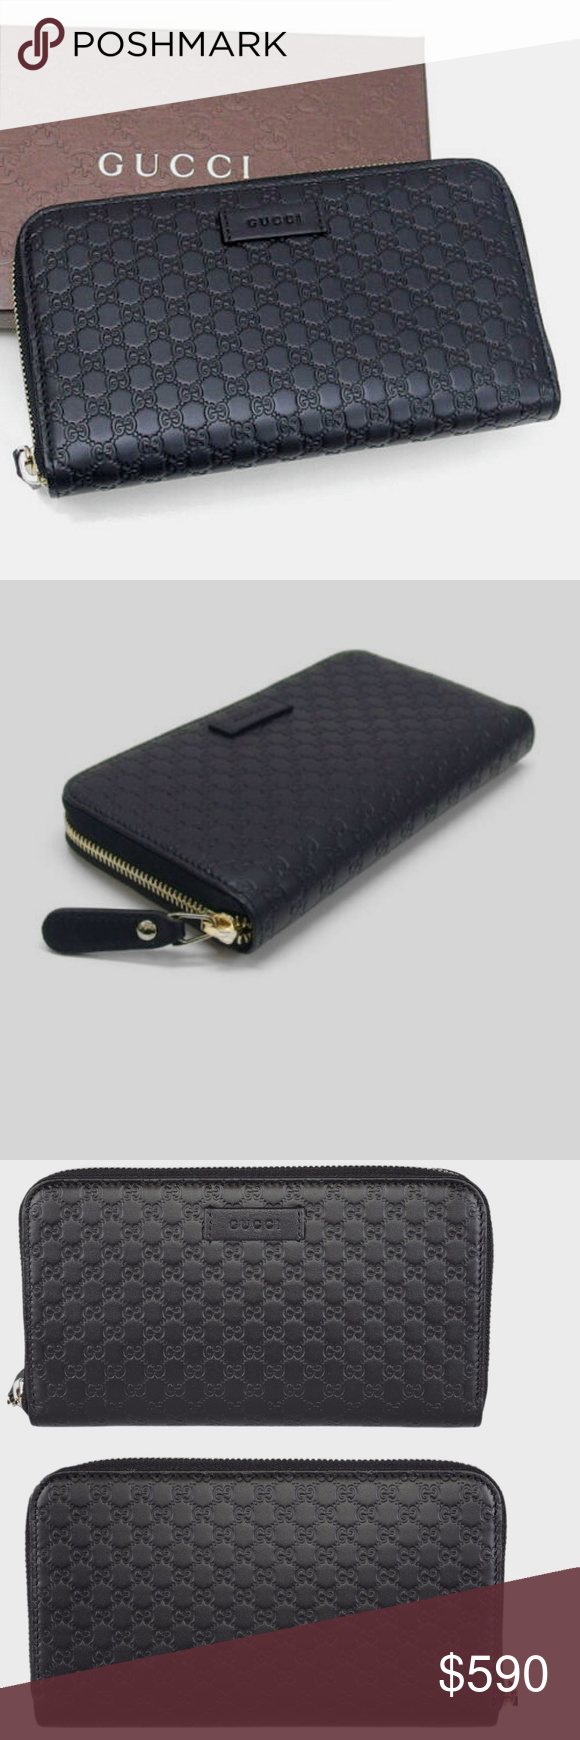 0dbb559a8b20 NWT GUCCI MicroGuccissima Leather Wallet 449391 100% Authentic New In Box  Gucci Micro GG Guccissima